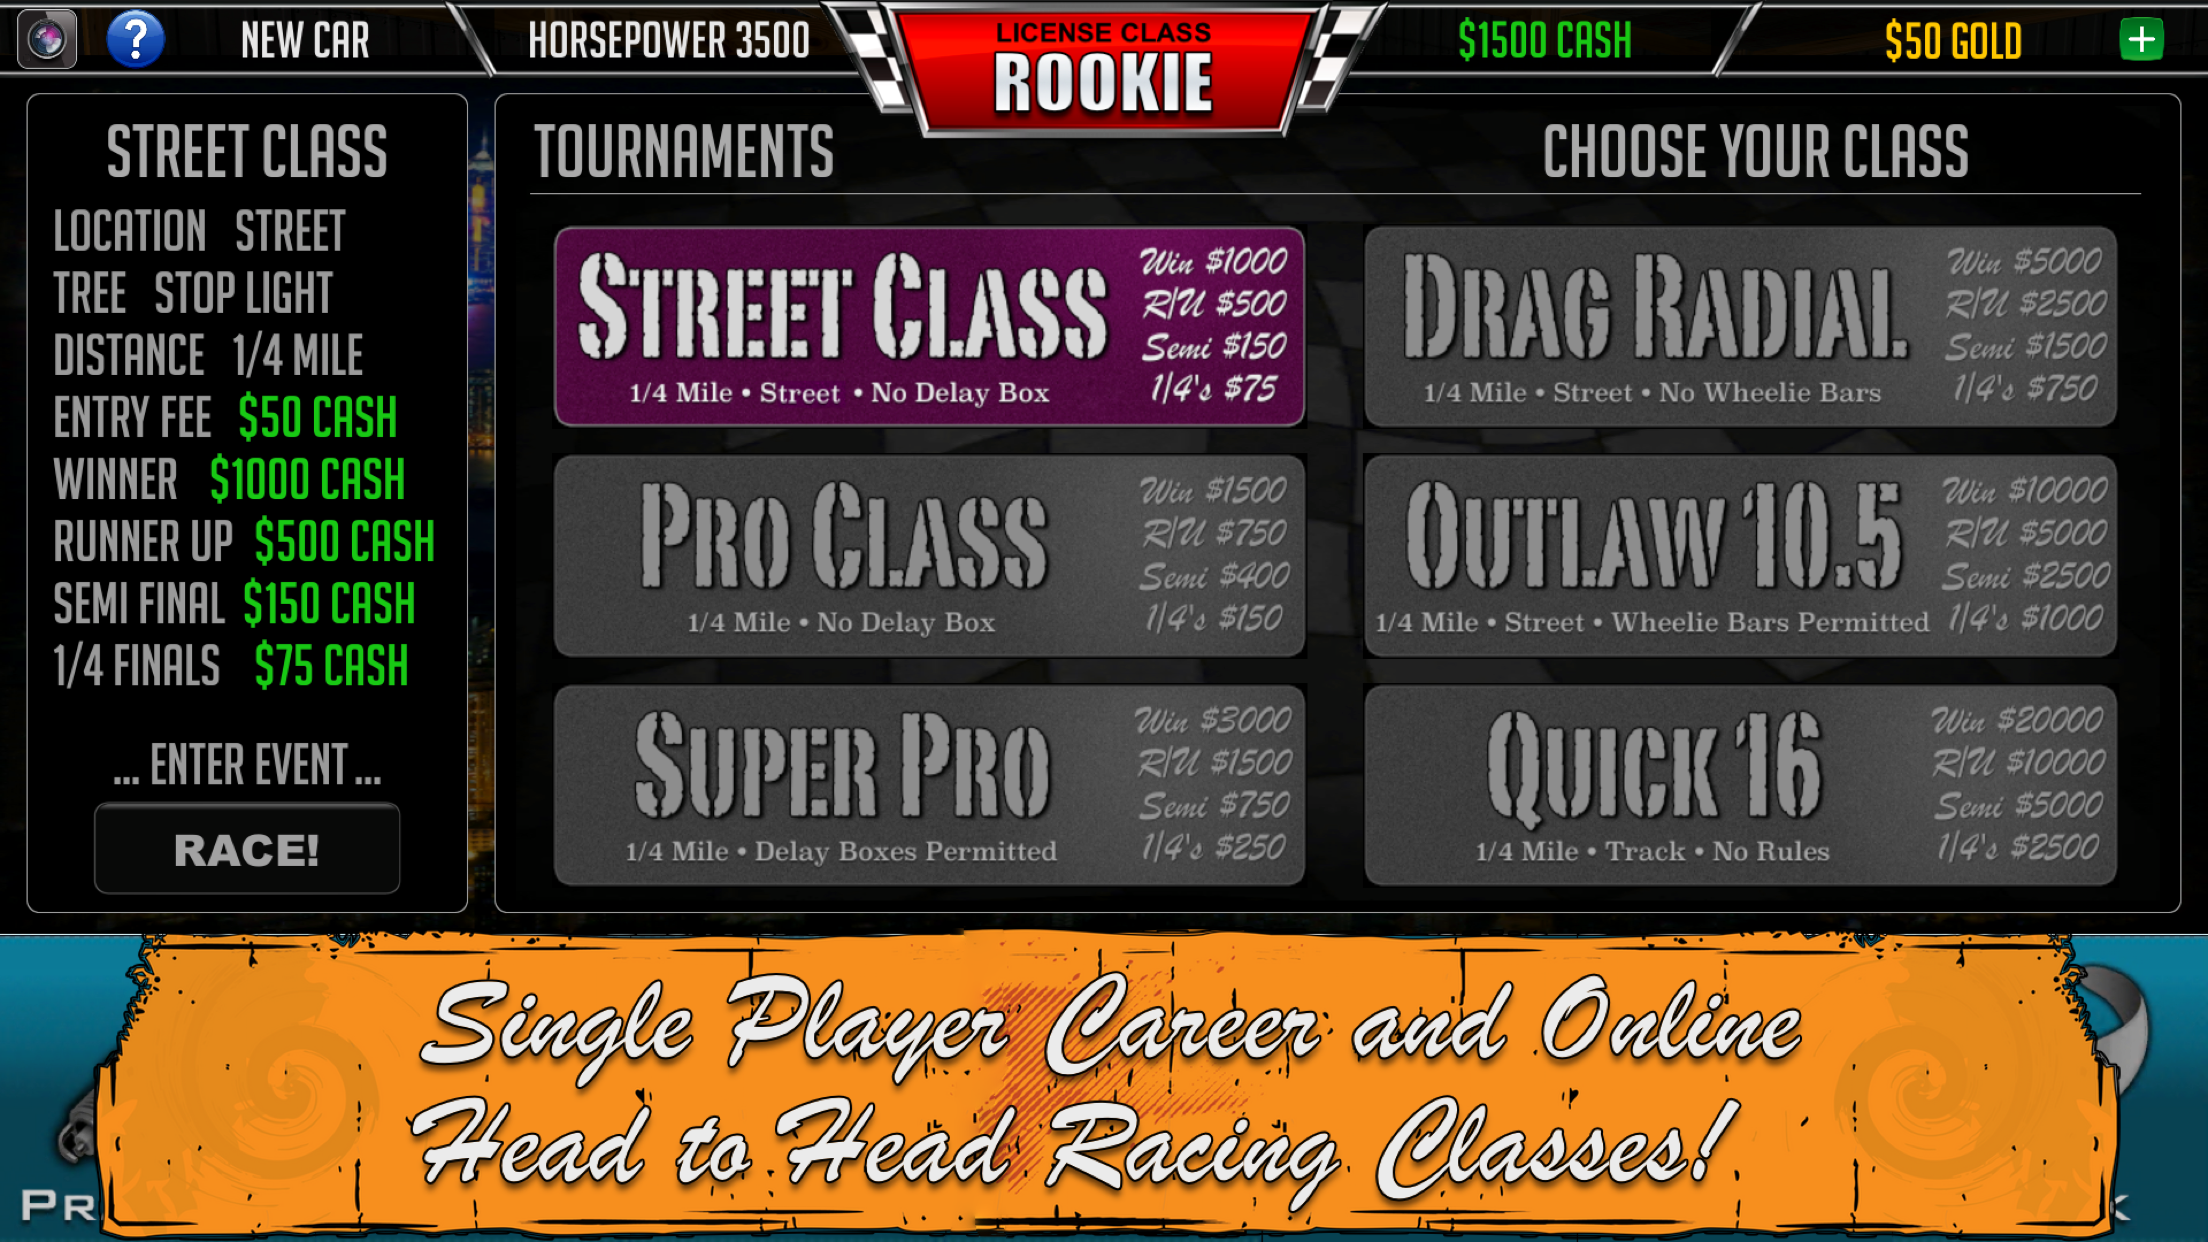 Door Slammers Racing Classes